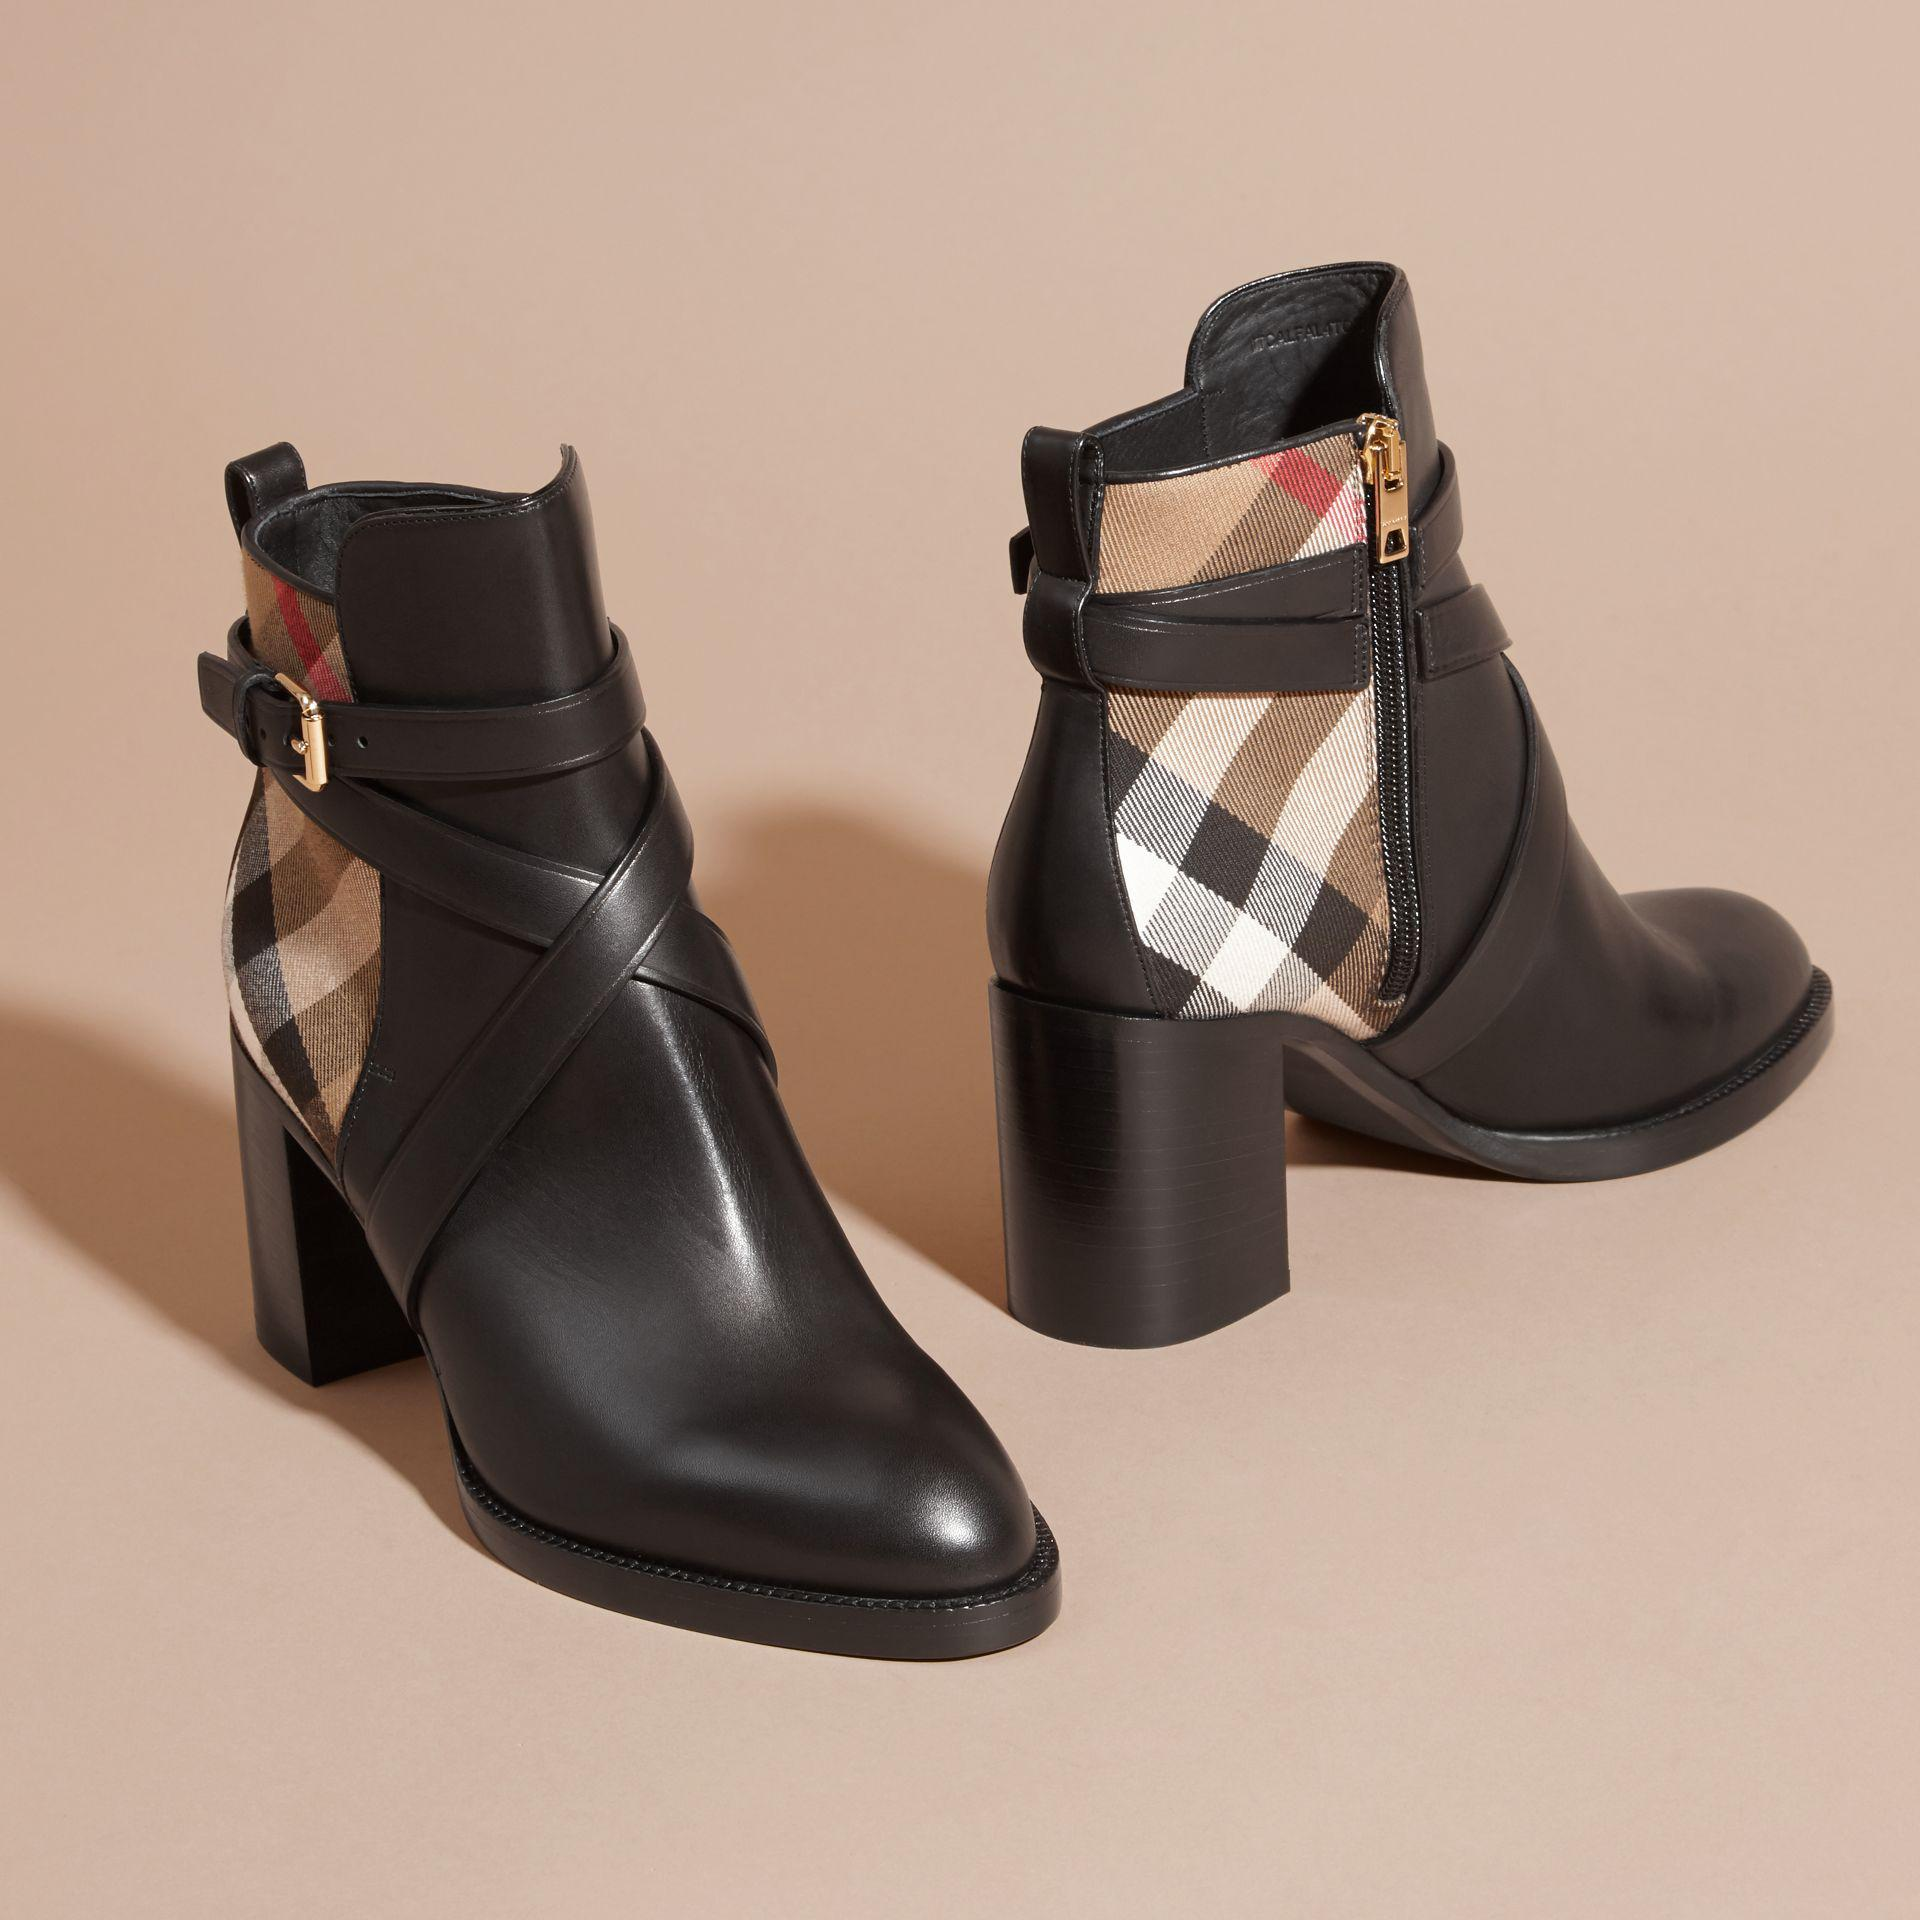 Burberry & Check Vaughan 70 Ankle Boots